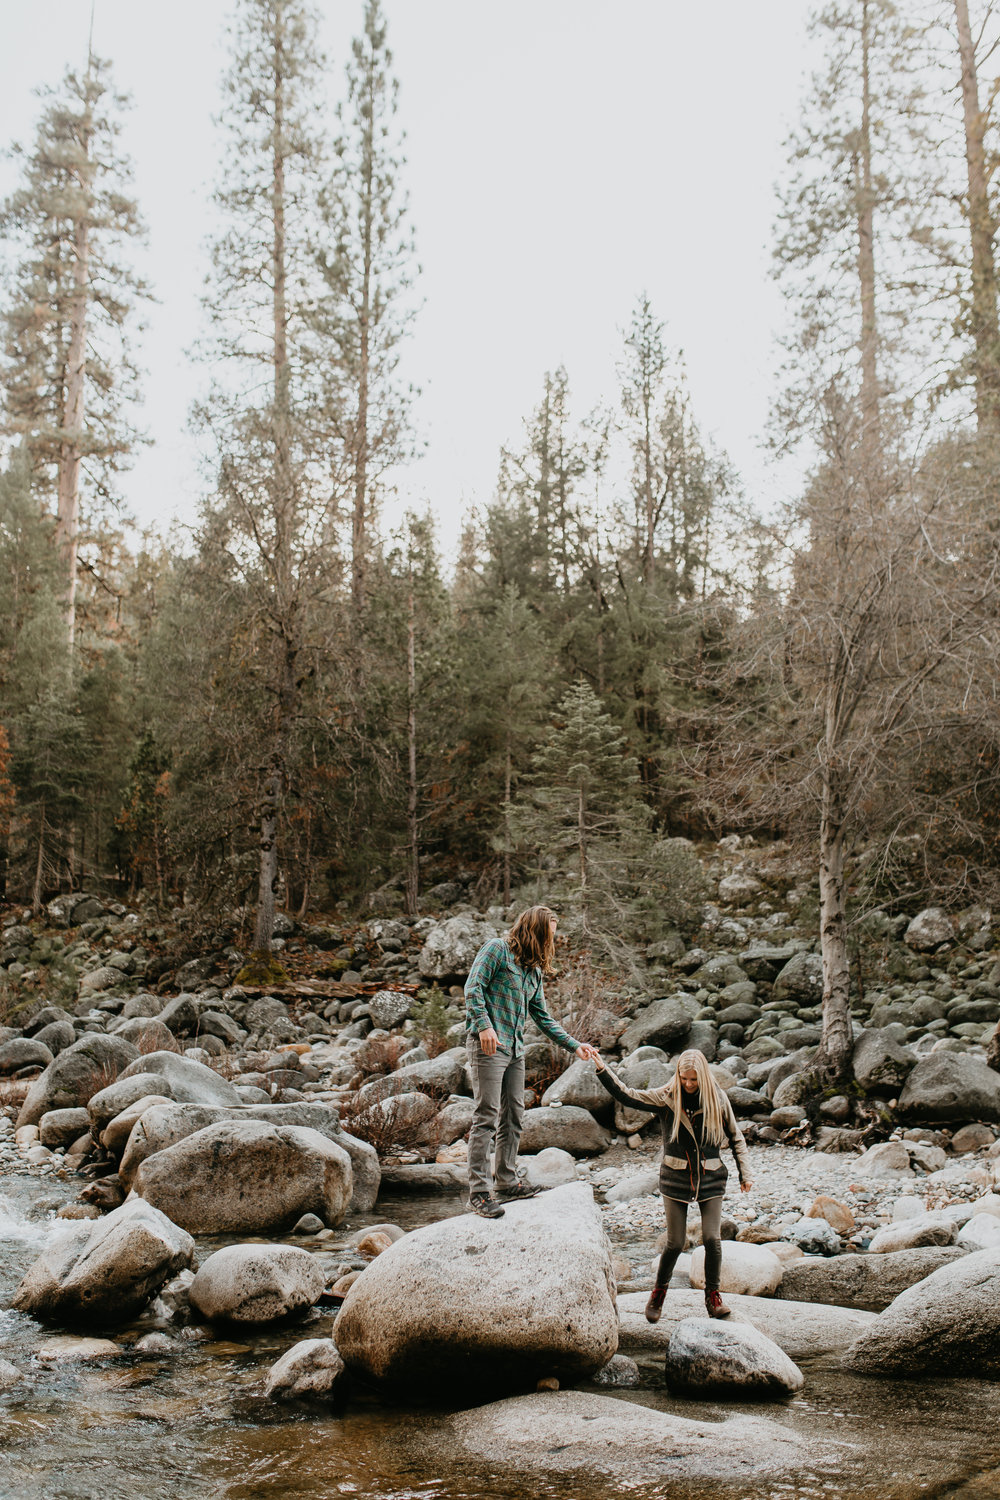 nicole-daacke-photography-yosemite-riverside-adventurous-engagement-photos-in-yosemite-national-park-elopement-photographer-weddings-travel-destination-wedding-eloping-elope-pine-forest-12.jpg